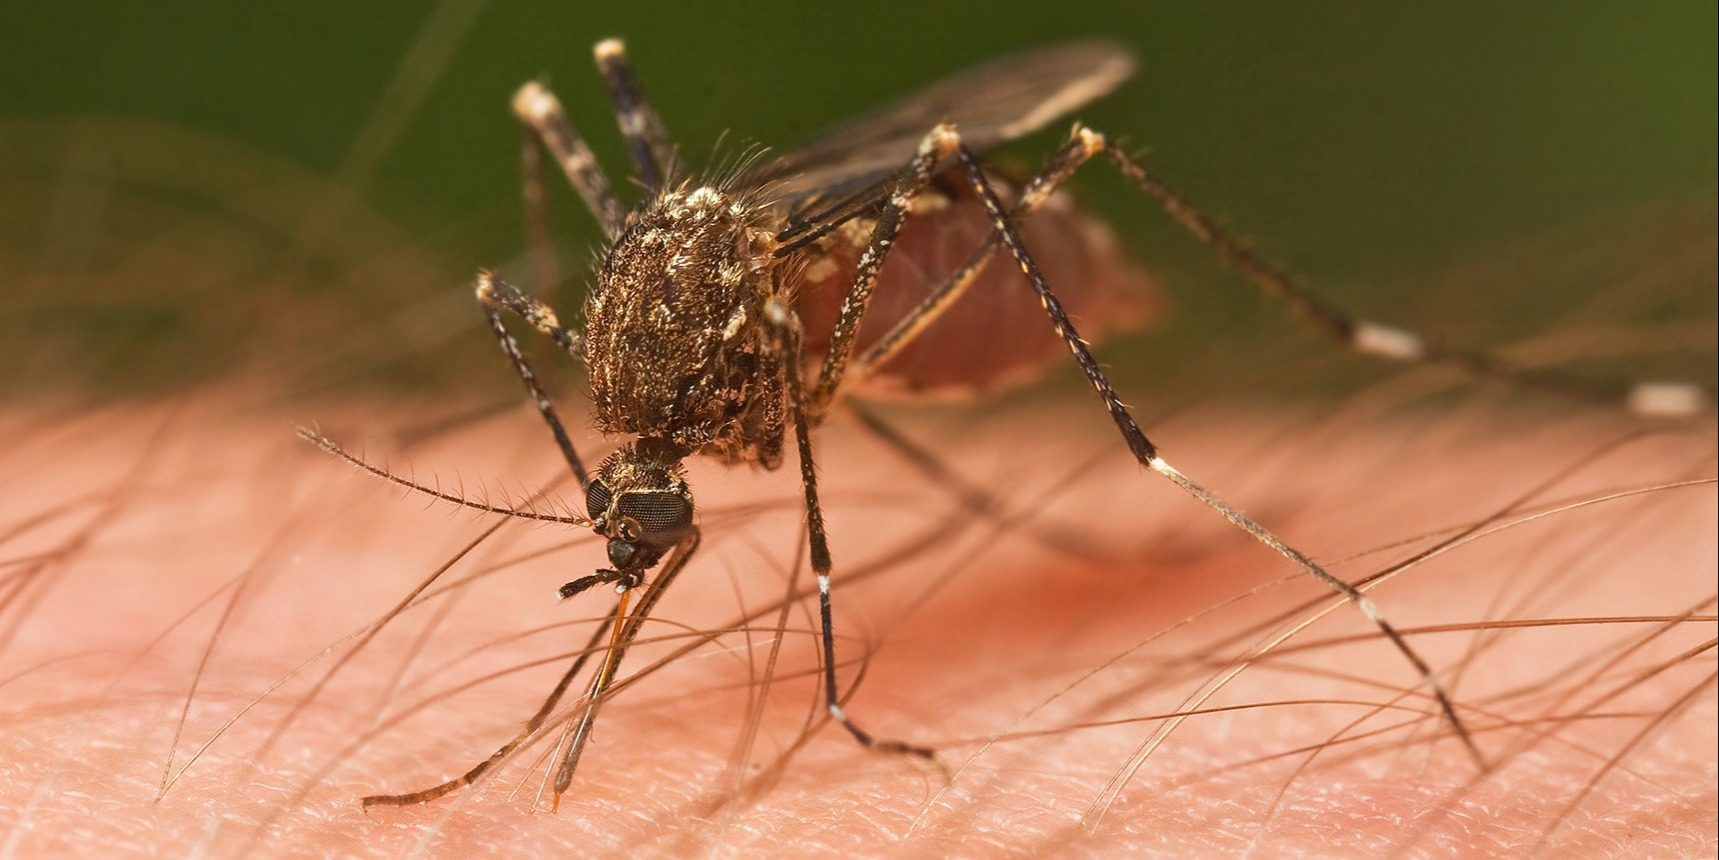 When thefemale mosquitobites, she uses a needle-like mouth part called a proboscis.